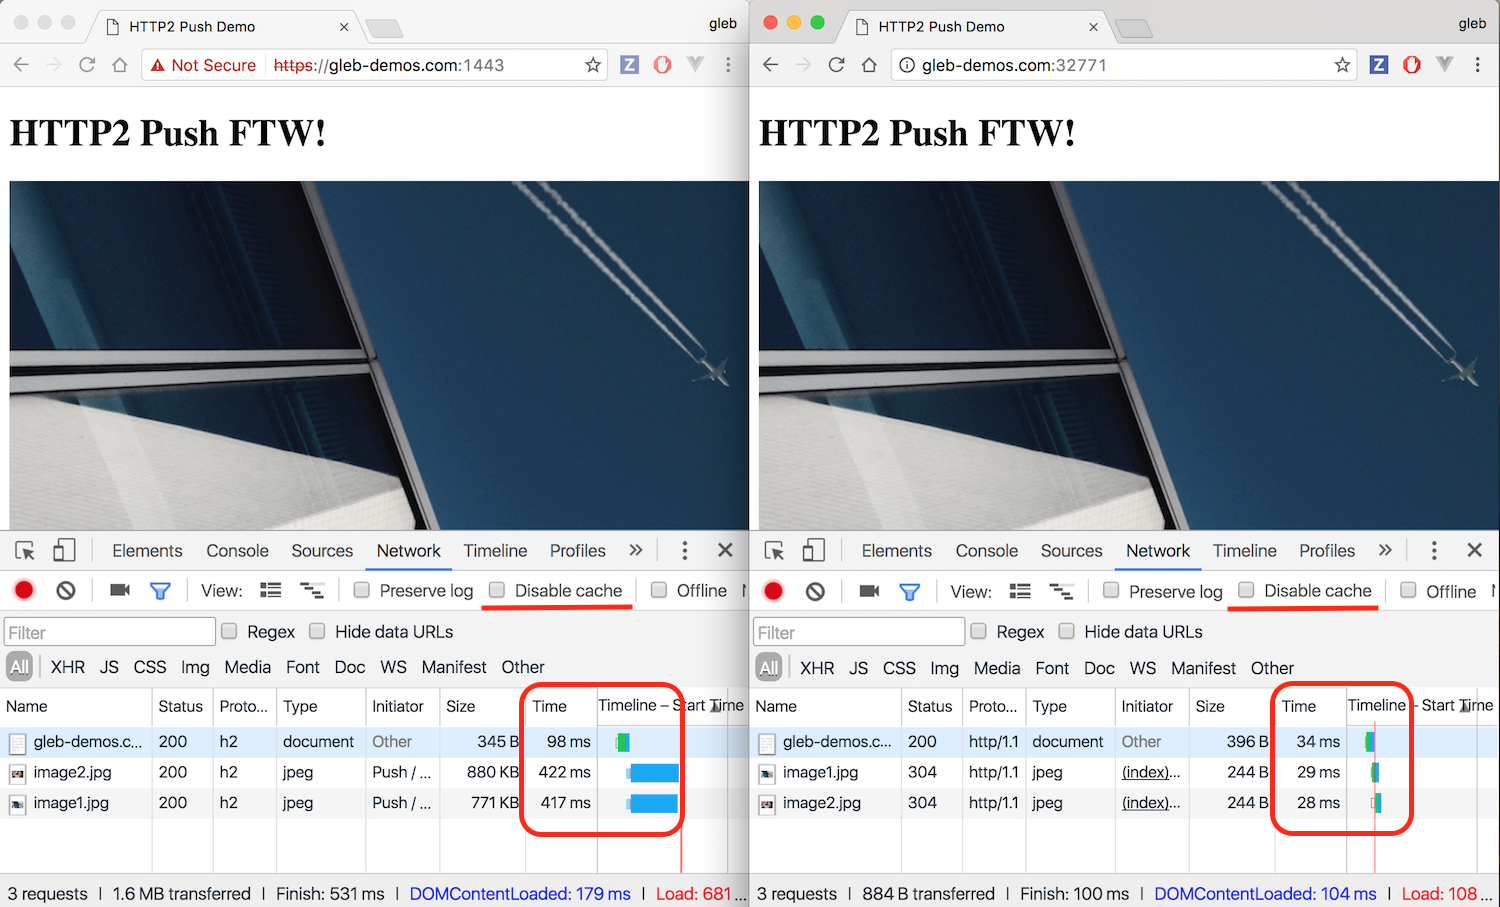 Page load with browser cache turned on